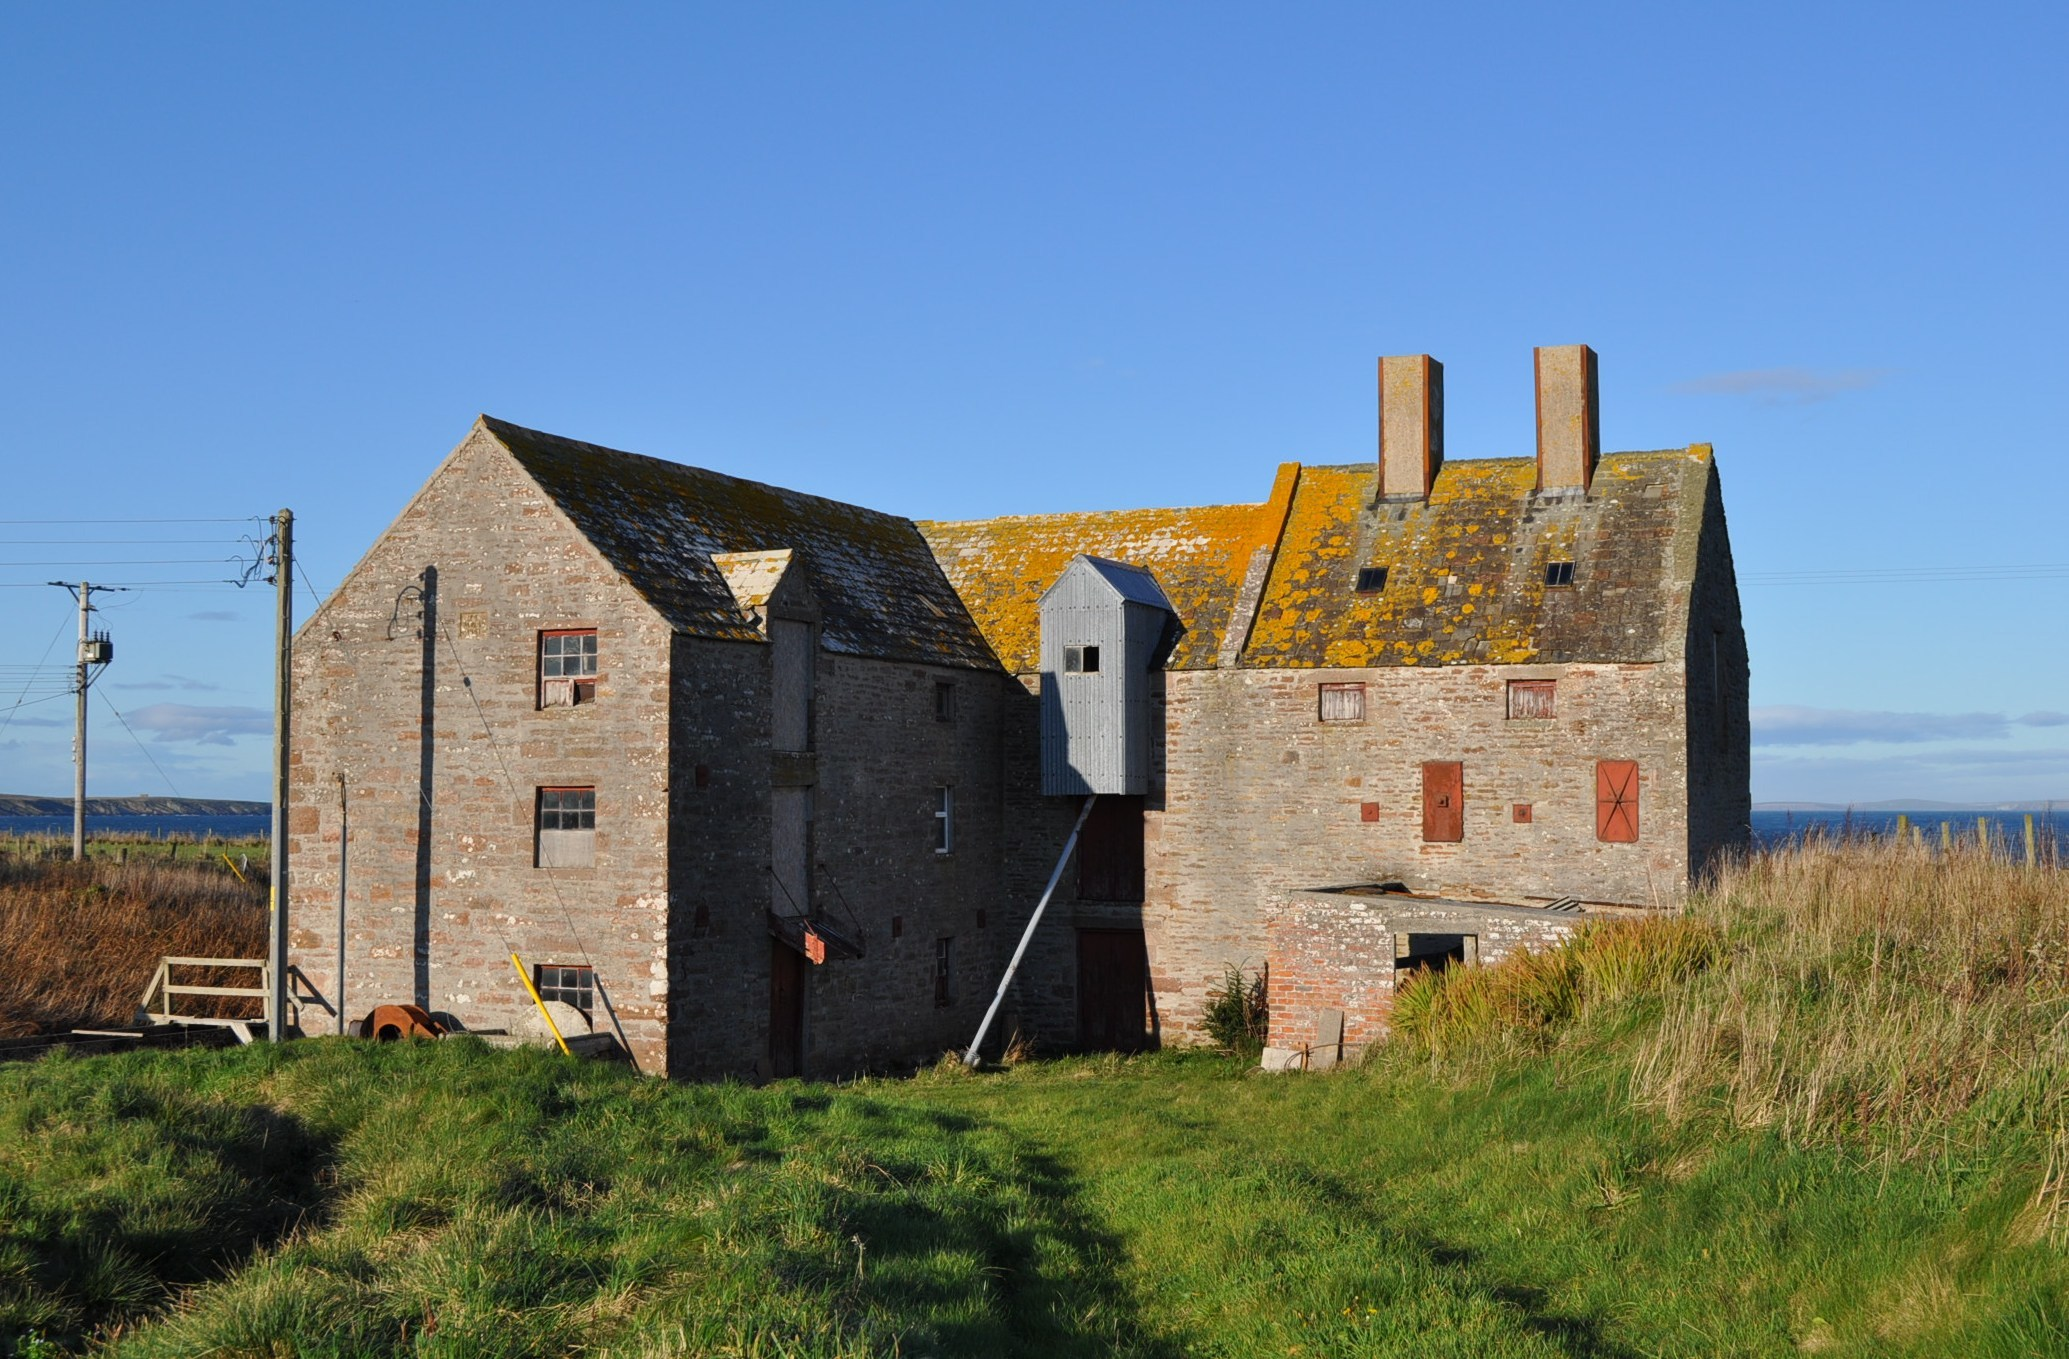 John O'Groats Mill has stood in its present form since 1901 but it was built on foundations of an earlier threshing mill dating from 1750